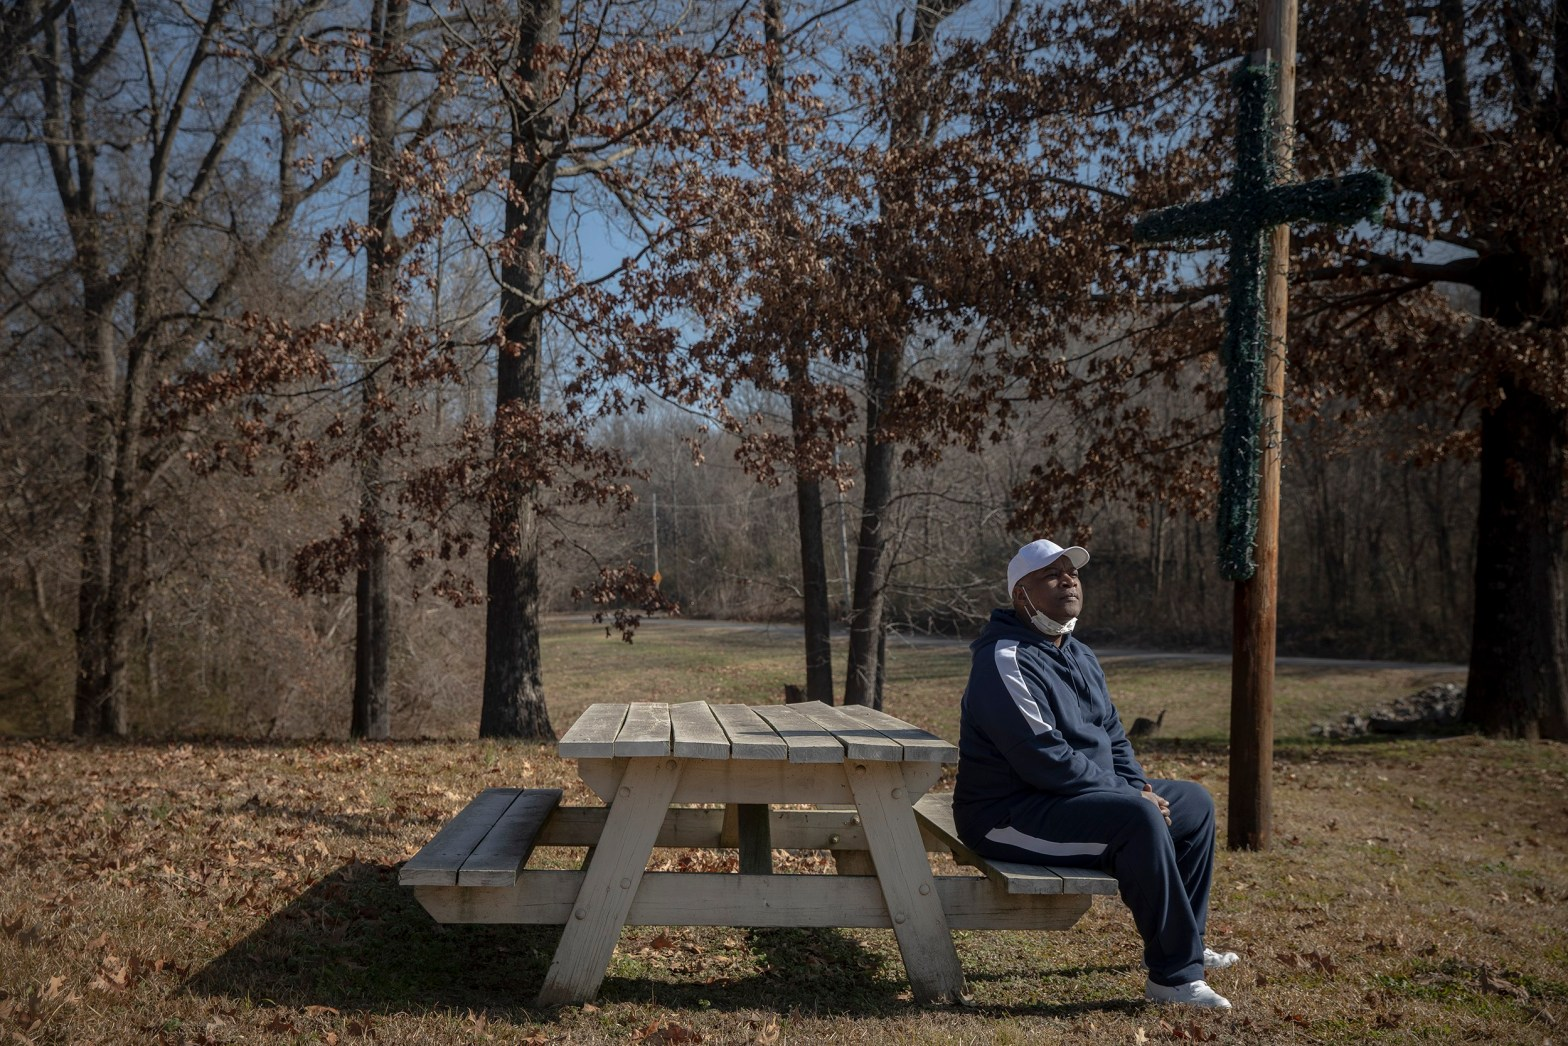 Joseph Owens sits for a portrait outside his home on an acre of land in Southwest Memphis. The Byhalia Connection Pipeline initially offered him $3,000 to obtain an easement on a portion of his property. Credit: Andrea Morales for MLK50